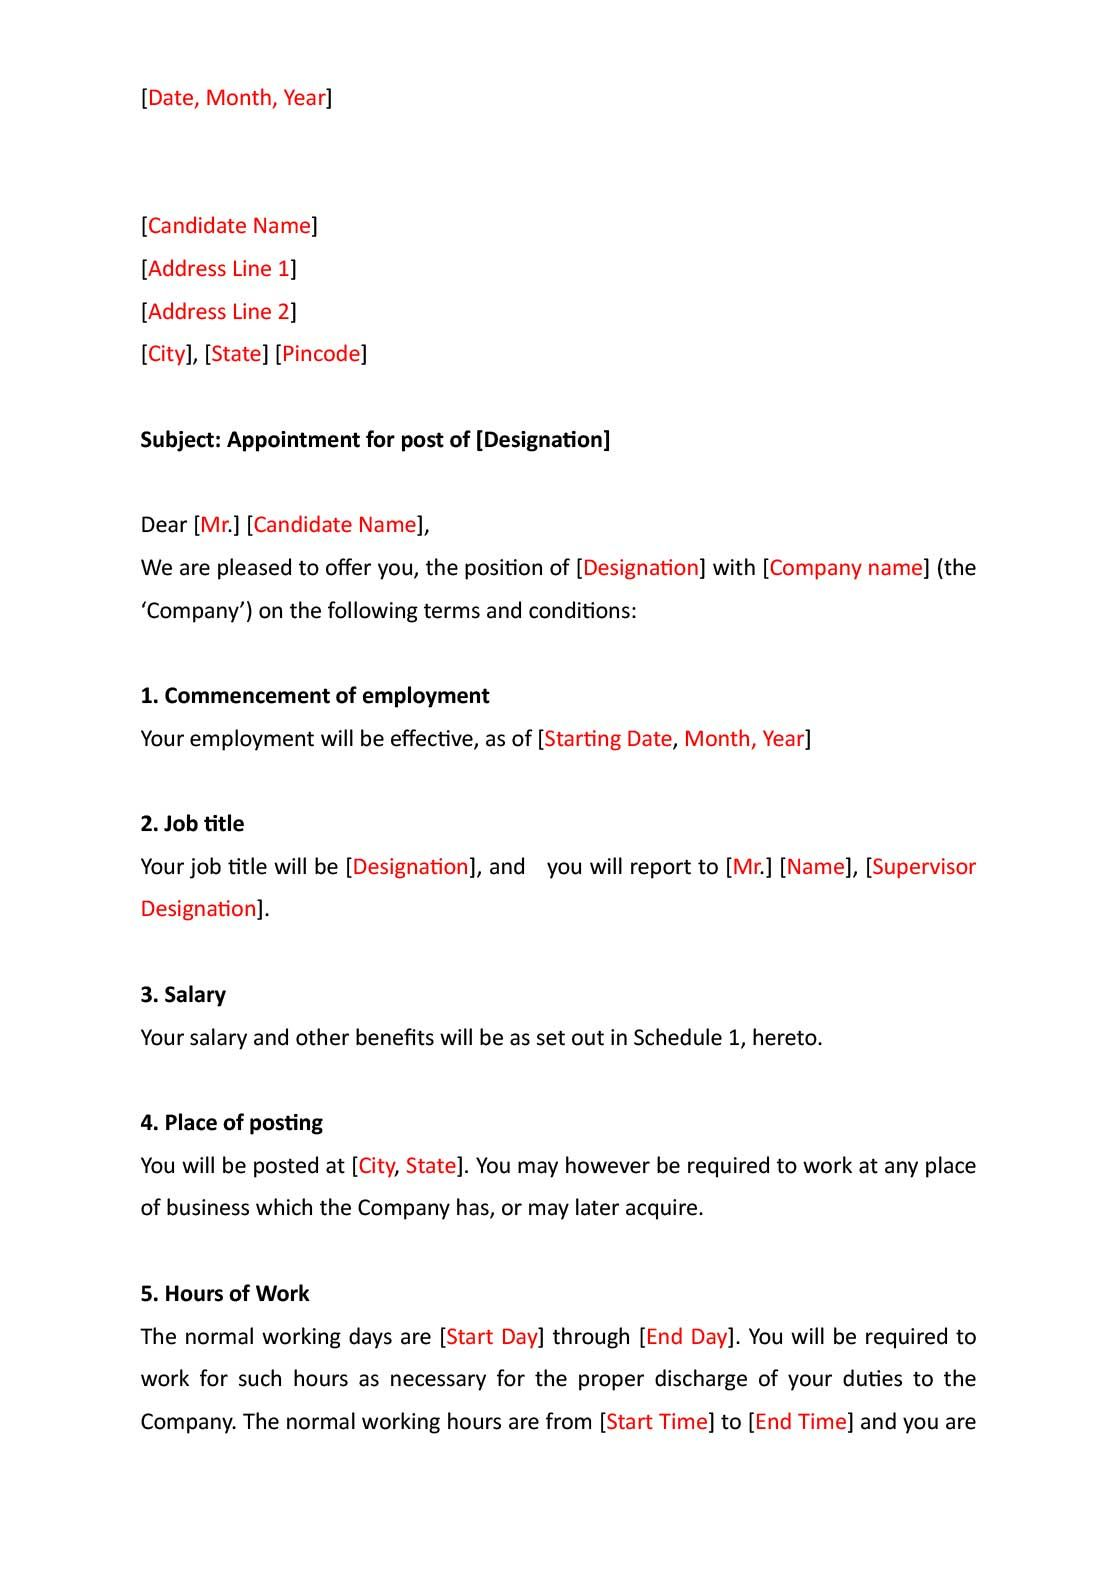 Appointment Letter Format Letter templates free, Letter